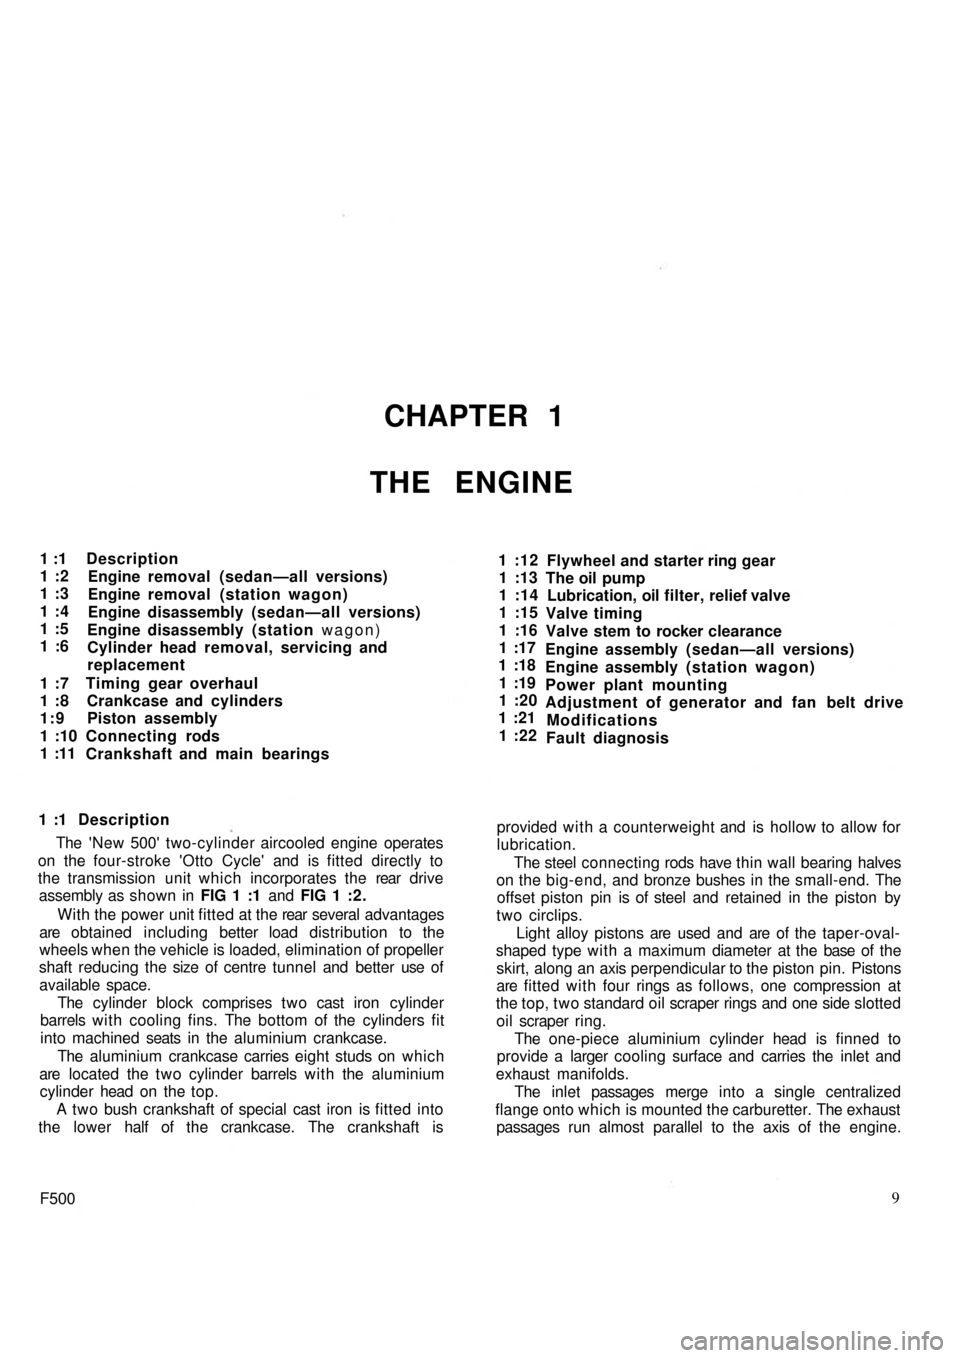 FIAT 500 1970 1.G Workshop Manual, Page 2